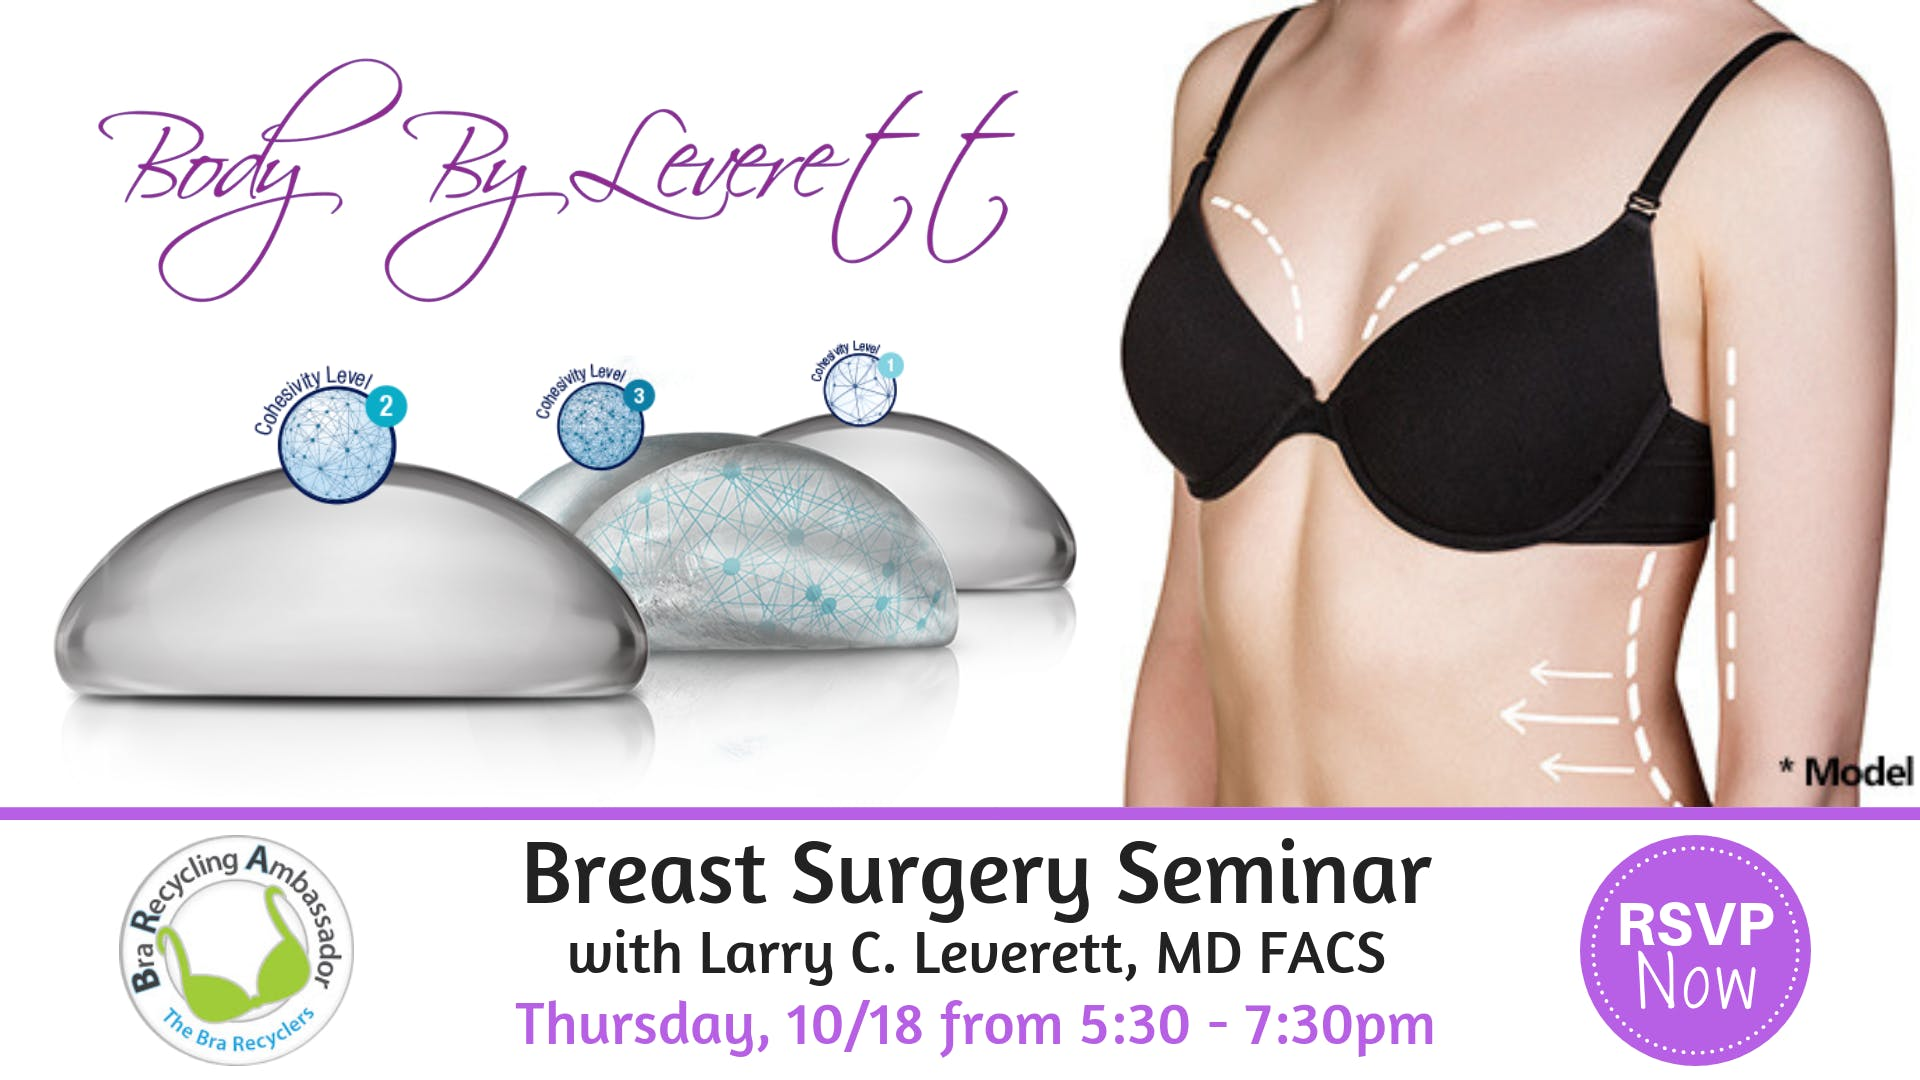 Breast Augmentation Seminar with Larry C. Leverett, MD